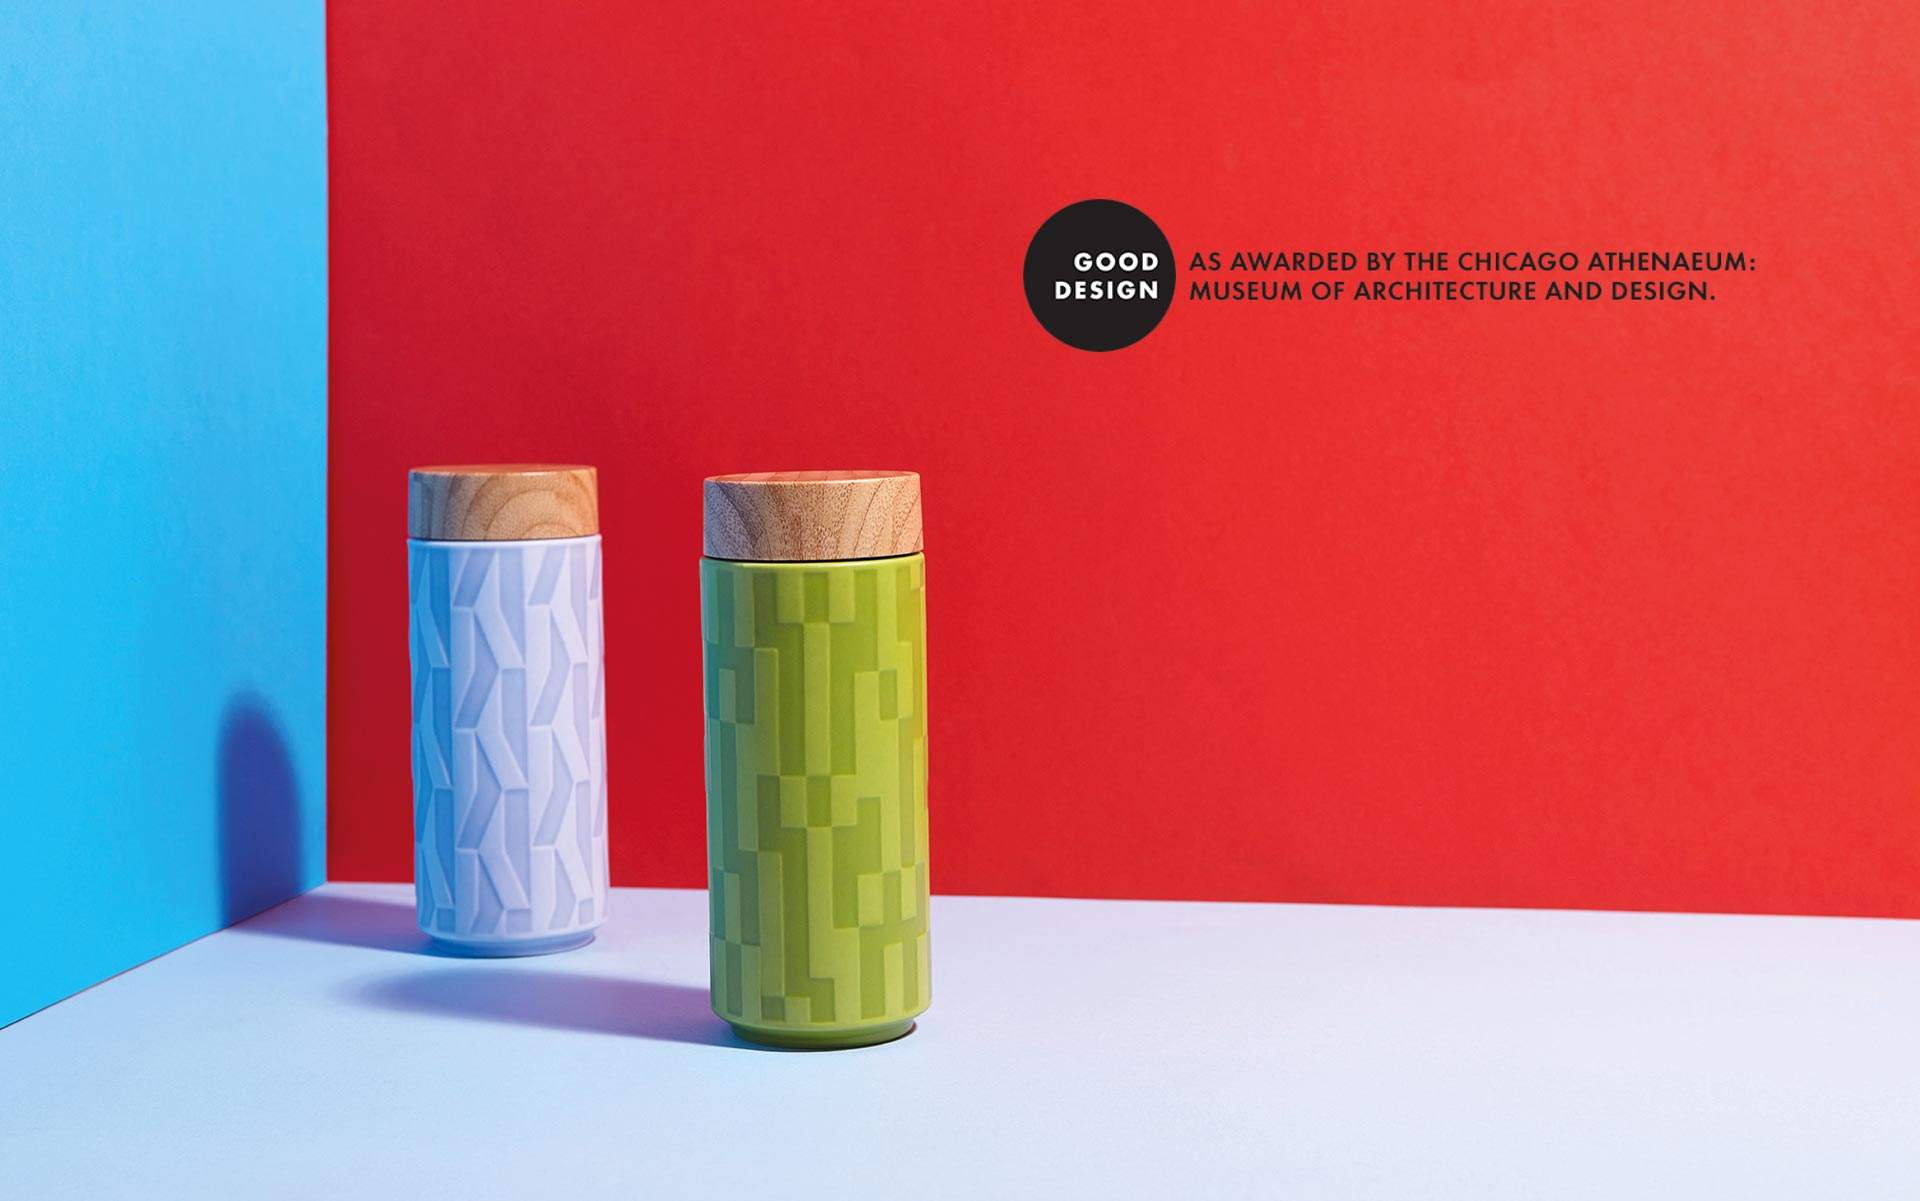 Hangar Design Group and Acera Liven travel mugs win the Chicago Good Design Award